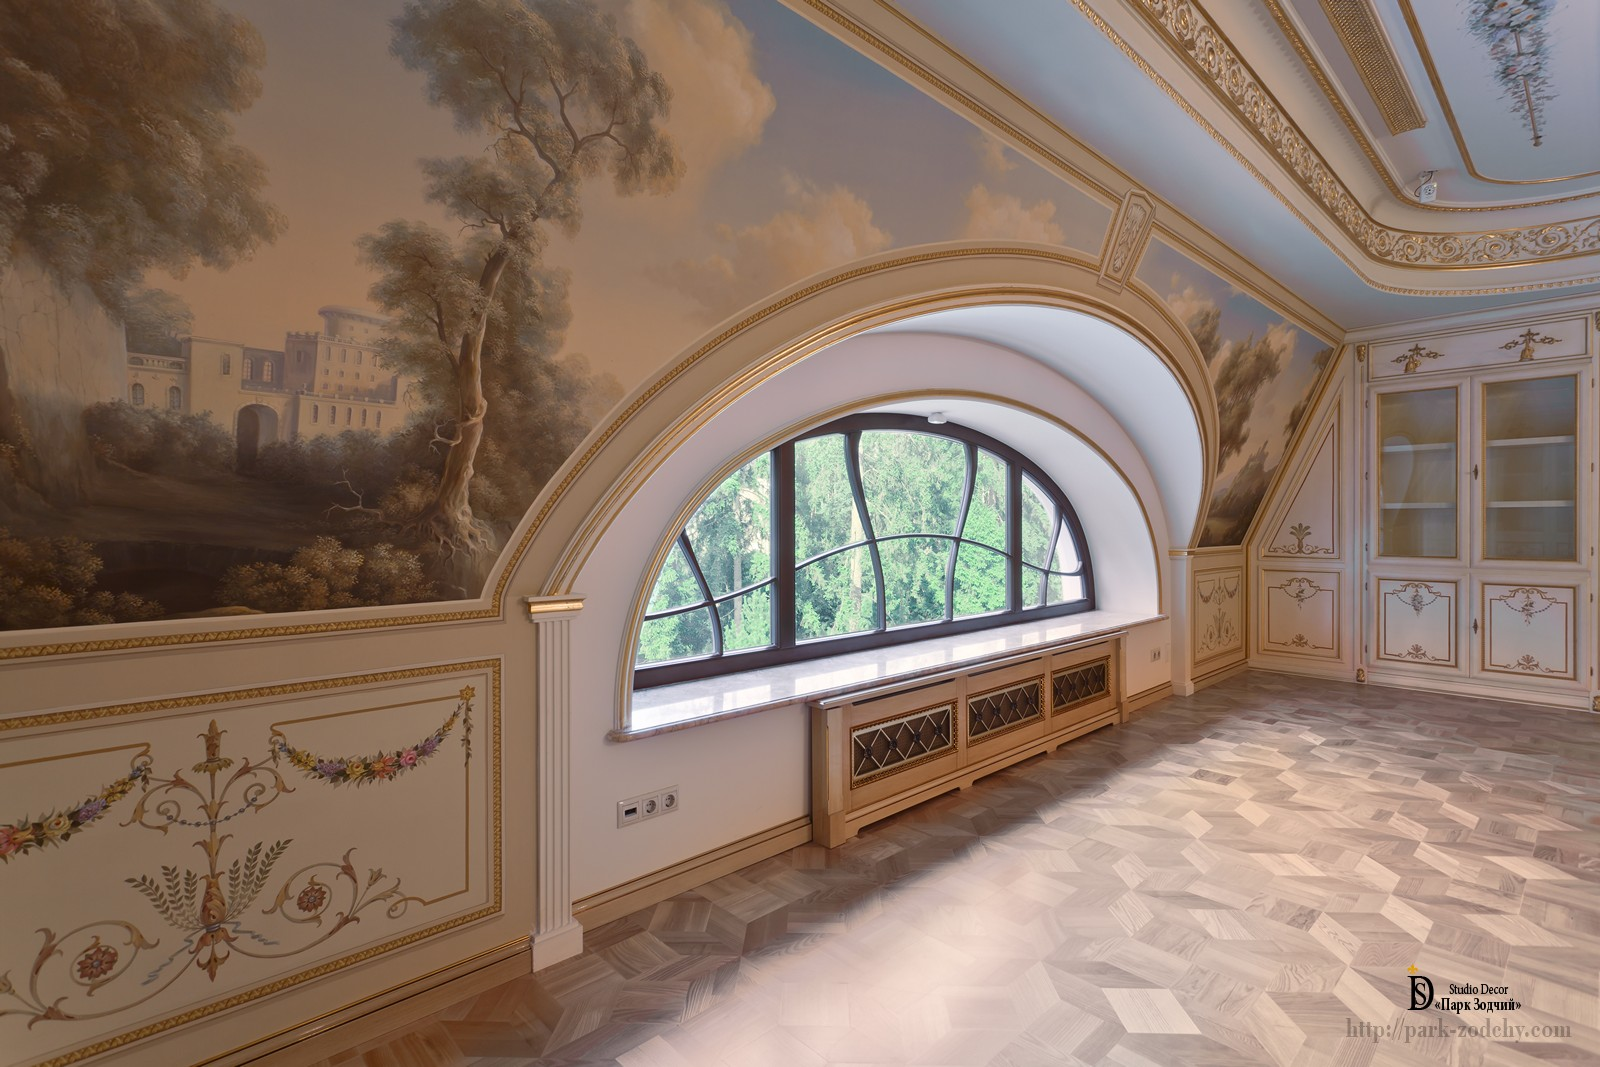 Illusionary ceiling painting in the hall